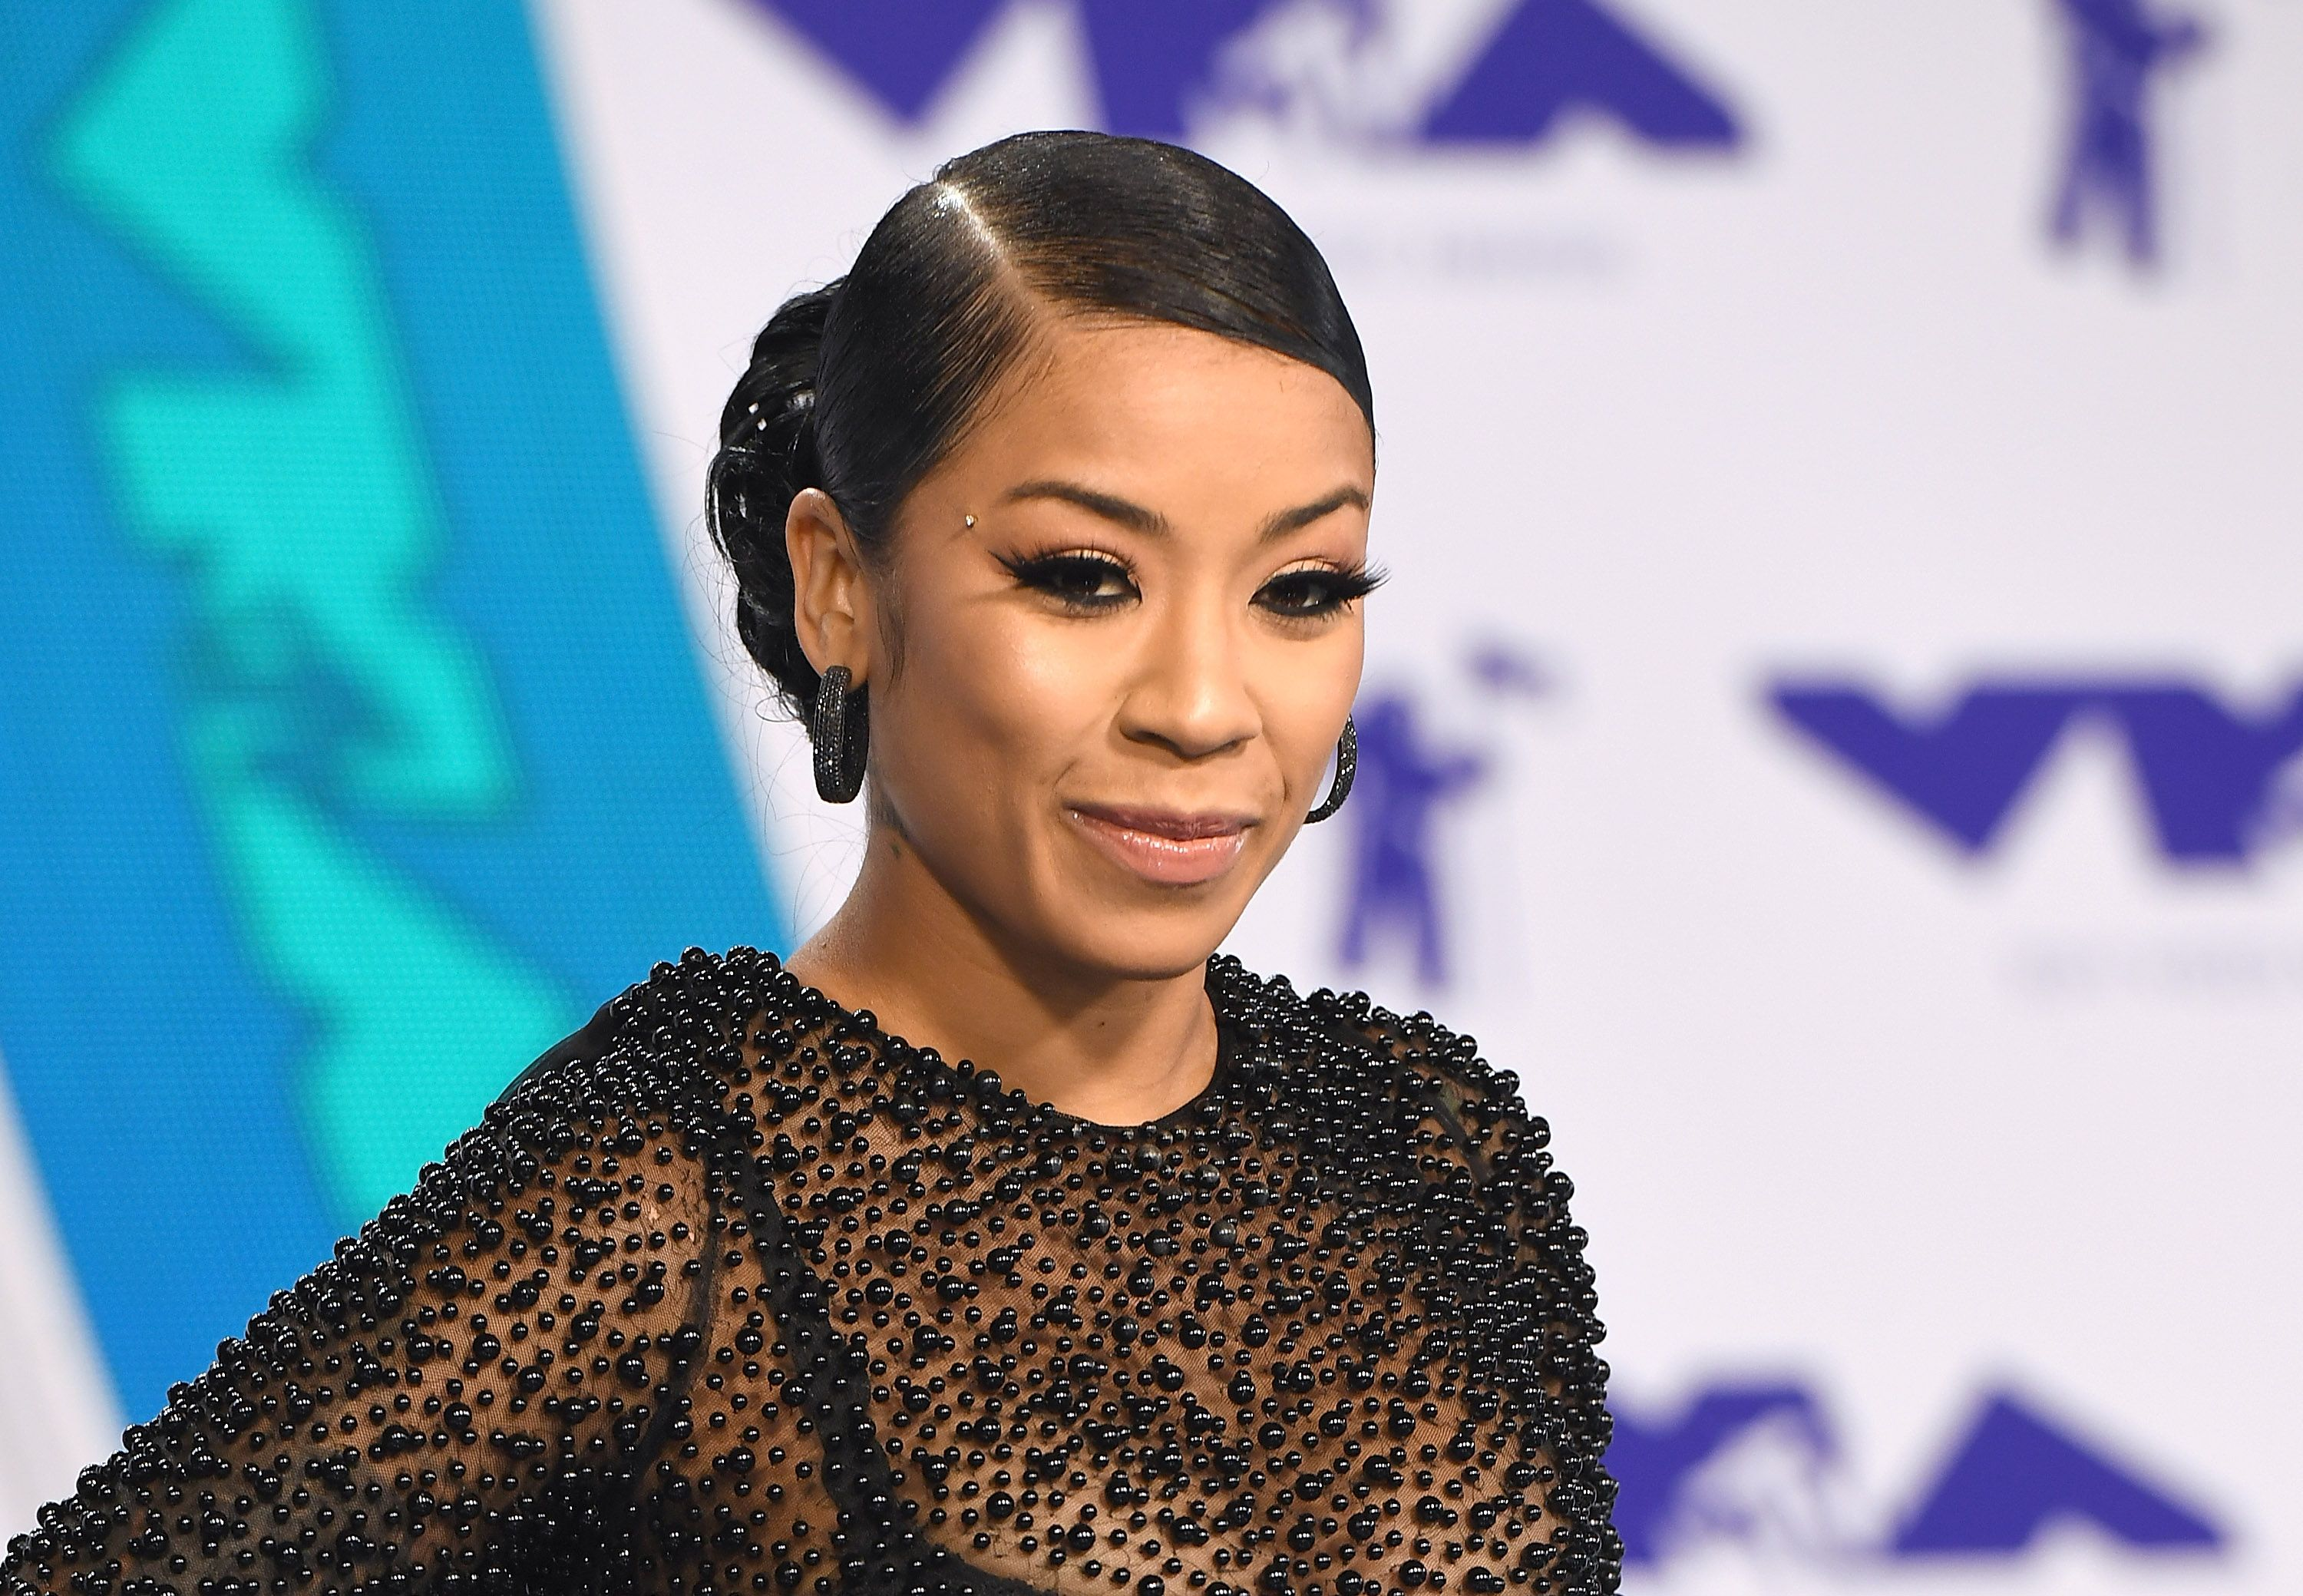 Keyshia Cole at the 2017 MTV Video Music Awards in California on Aug. 27, 2017.   Photo: Getty Images